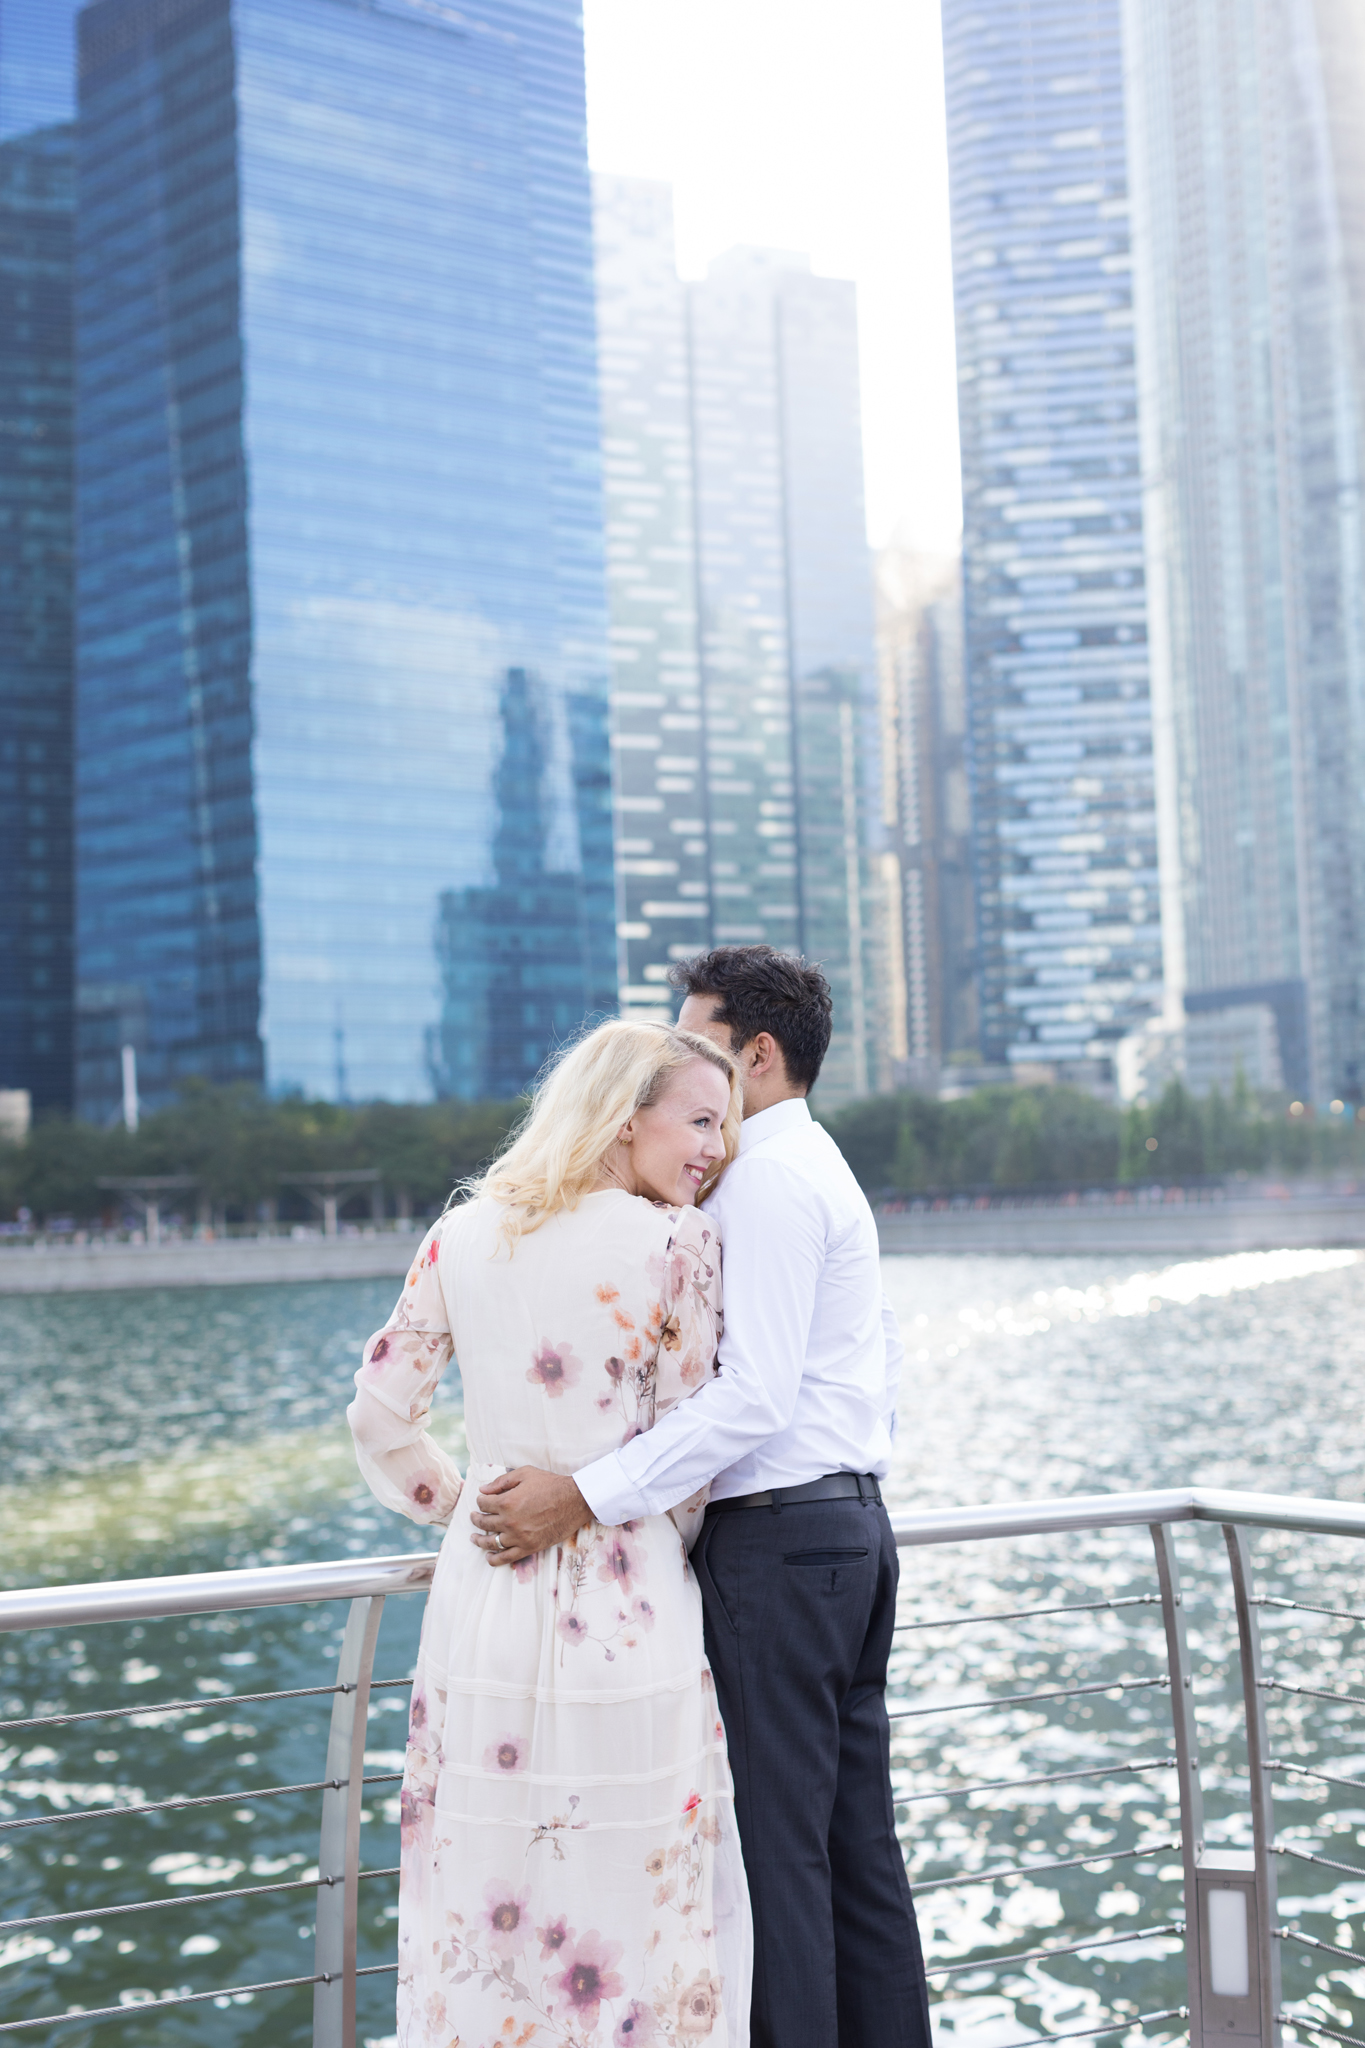 couples in love photoshoot at marina bay sands at sunset gorgeous backlight photo session getting engaged